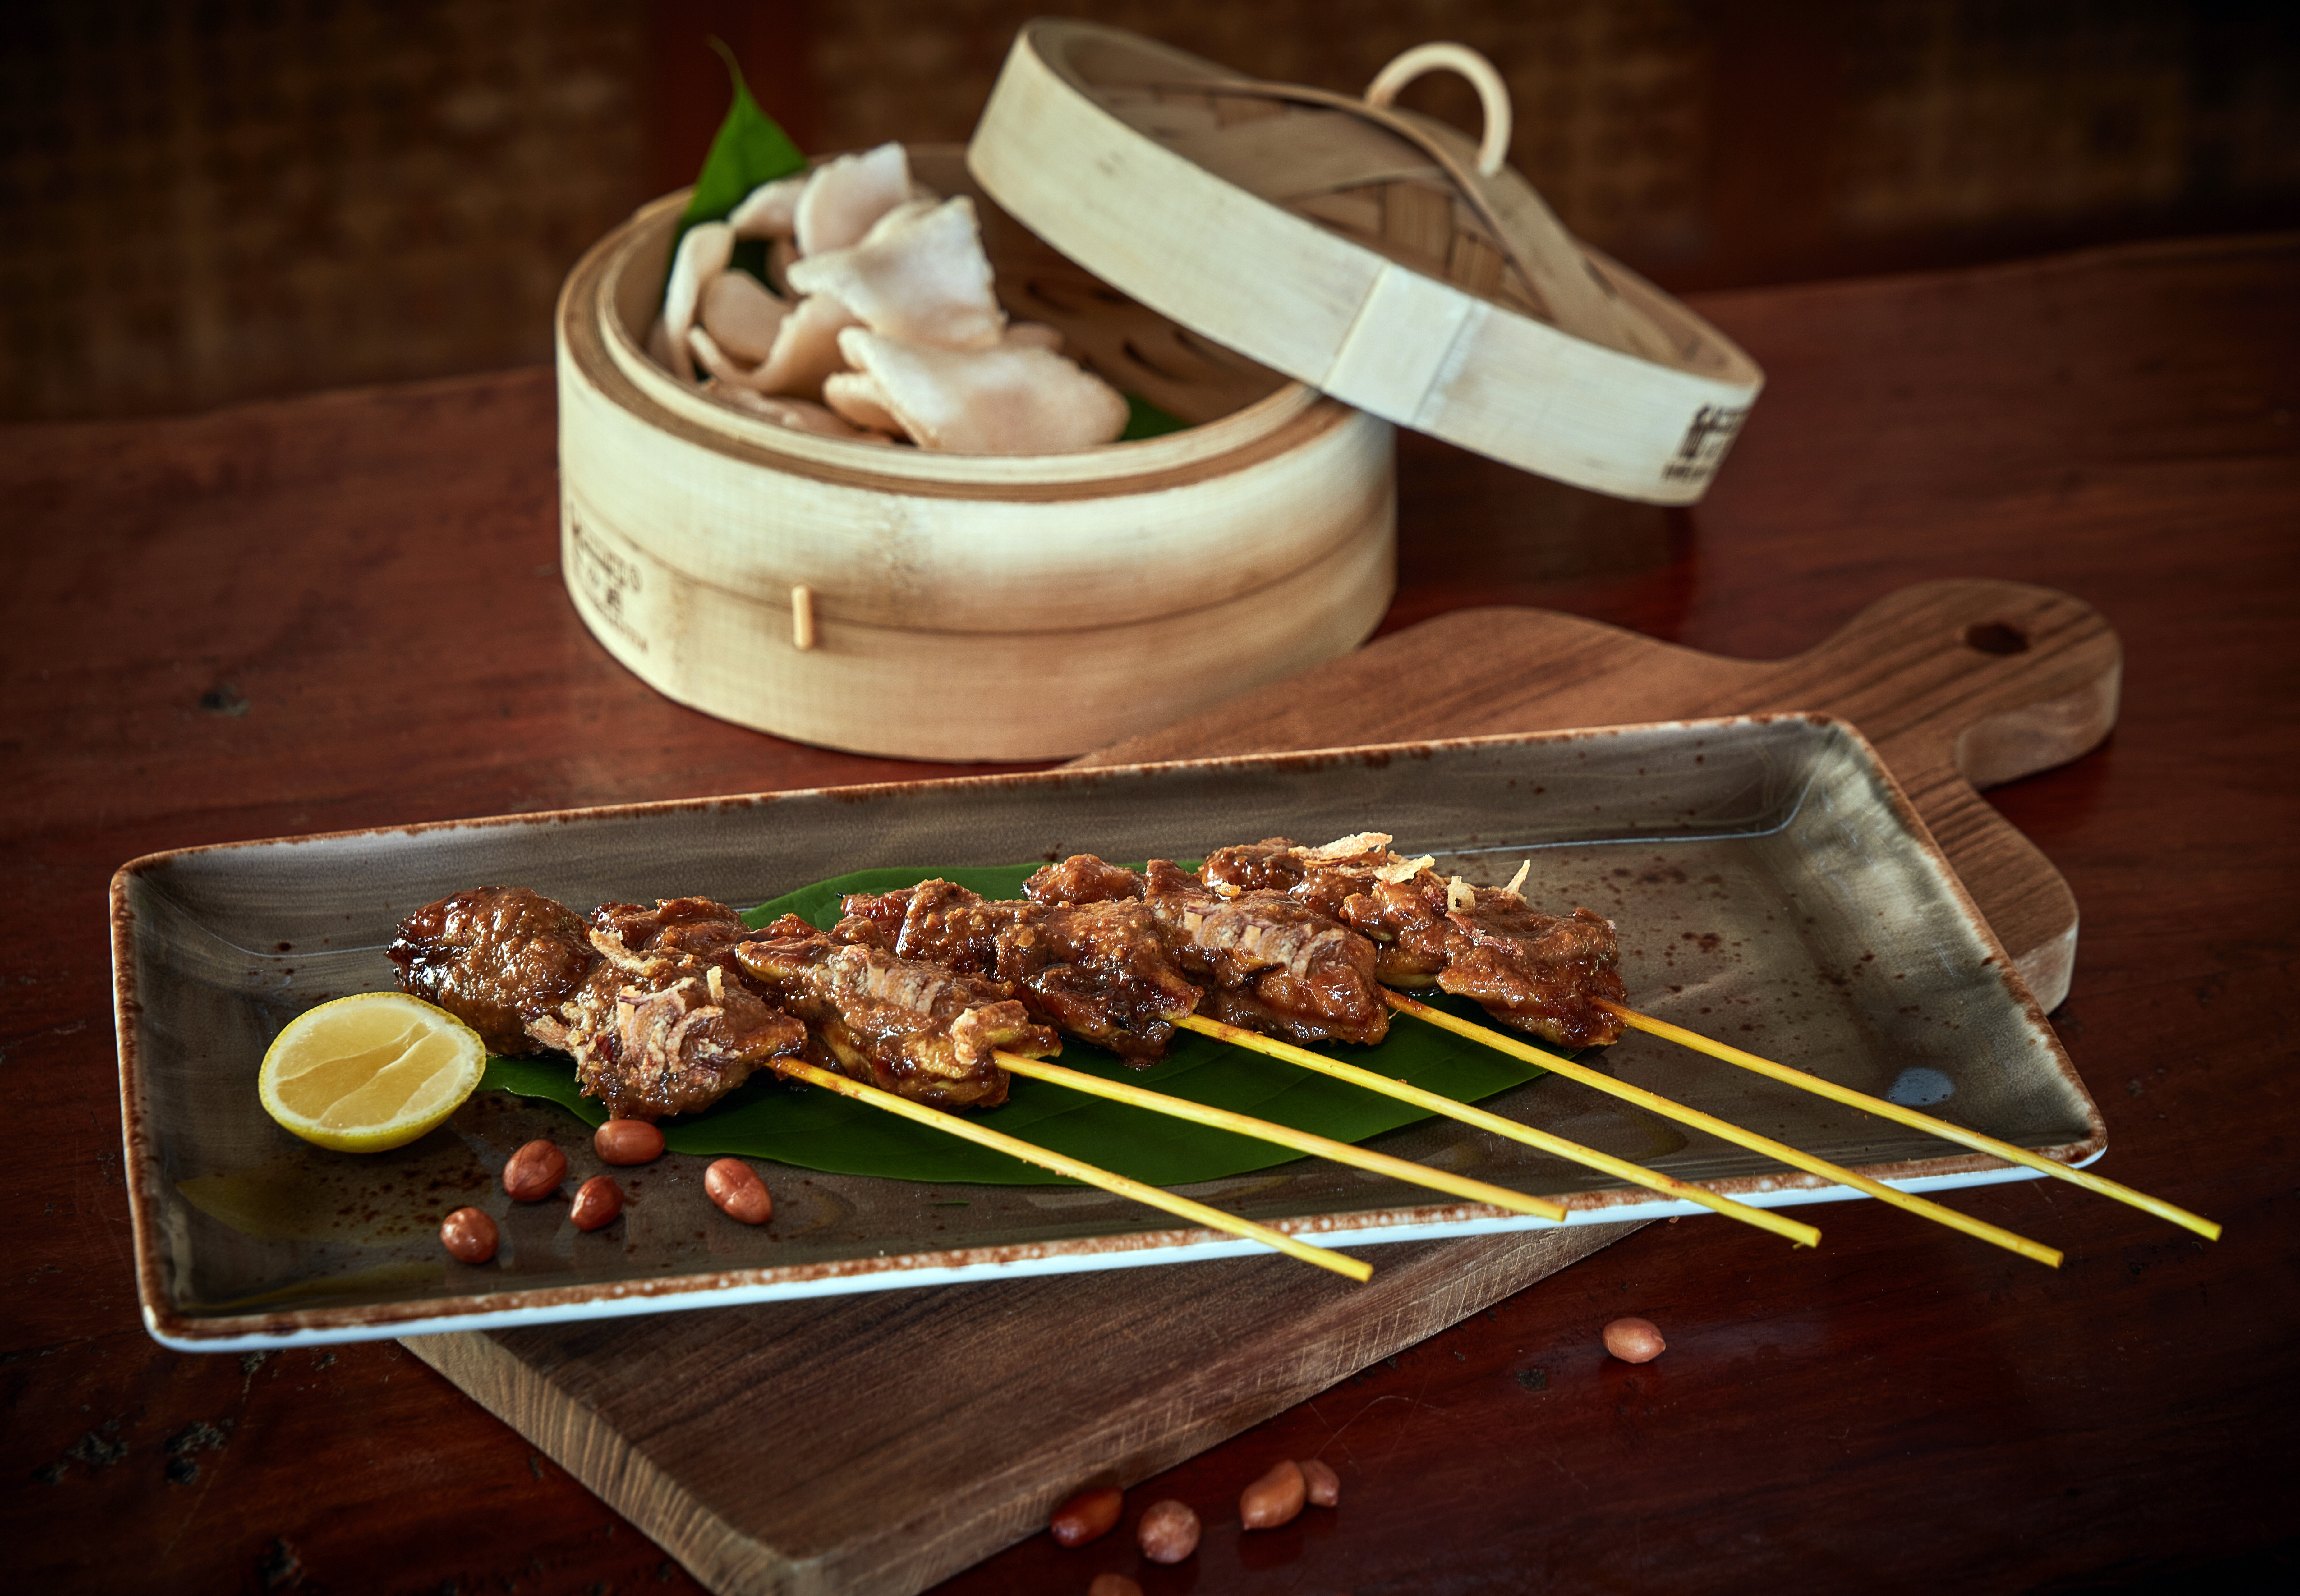 grilled_satay_served_with_roasted_peanuts_and_crackers_in_bamboo_steamer_treetops